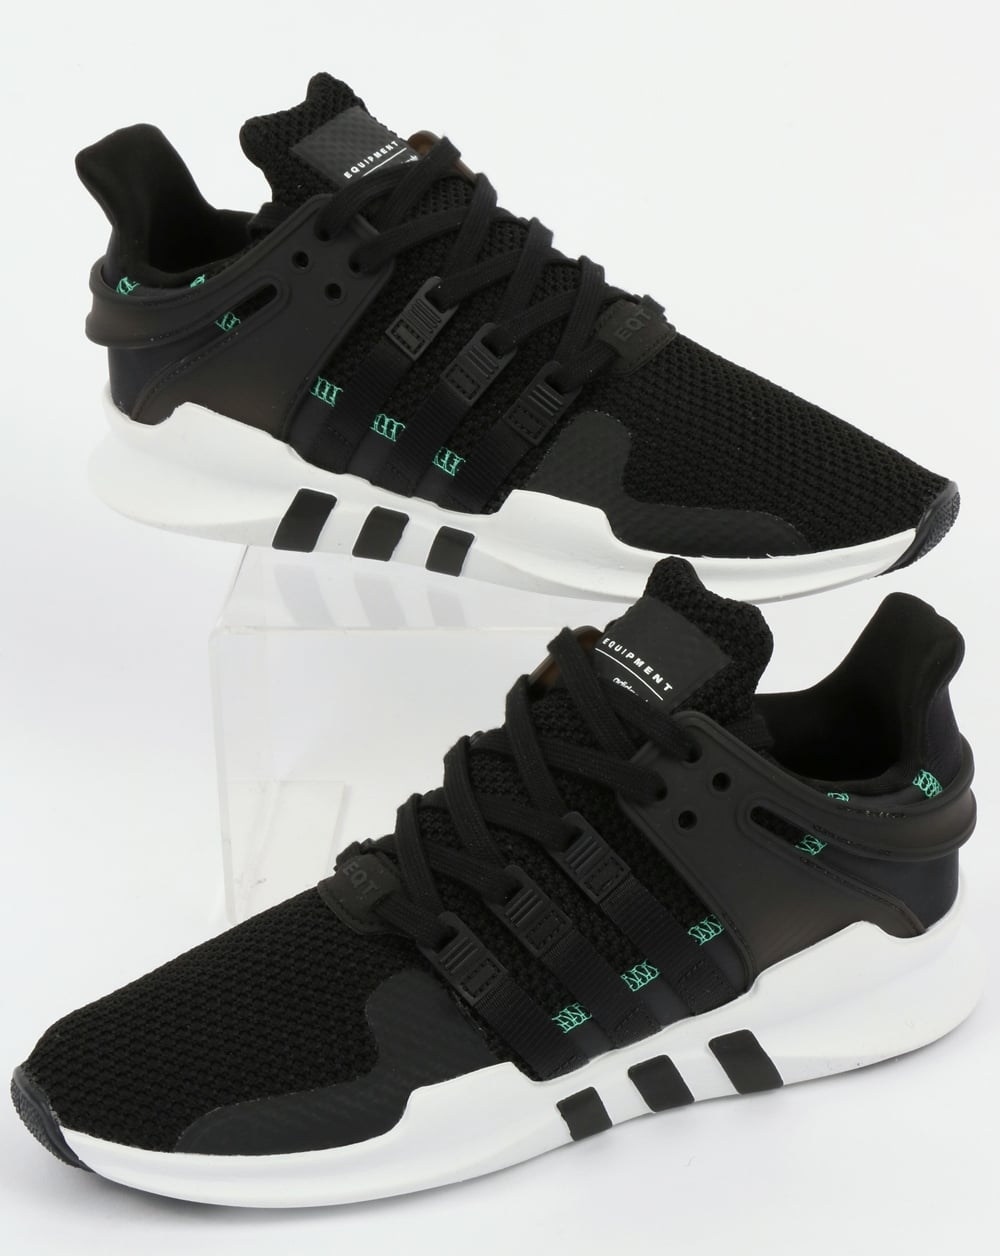 adidas Trainers Adidas EQT Support ADV Trainers Black Black White 67b8cb9e5